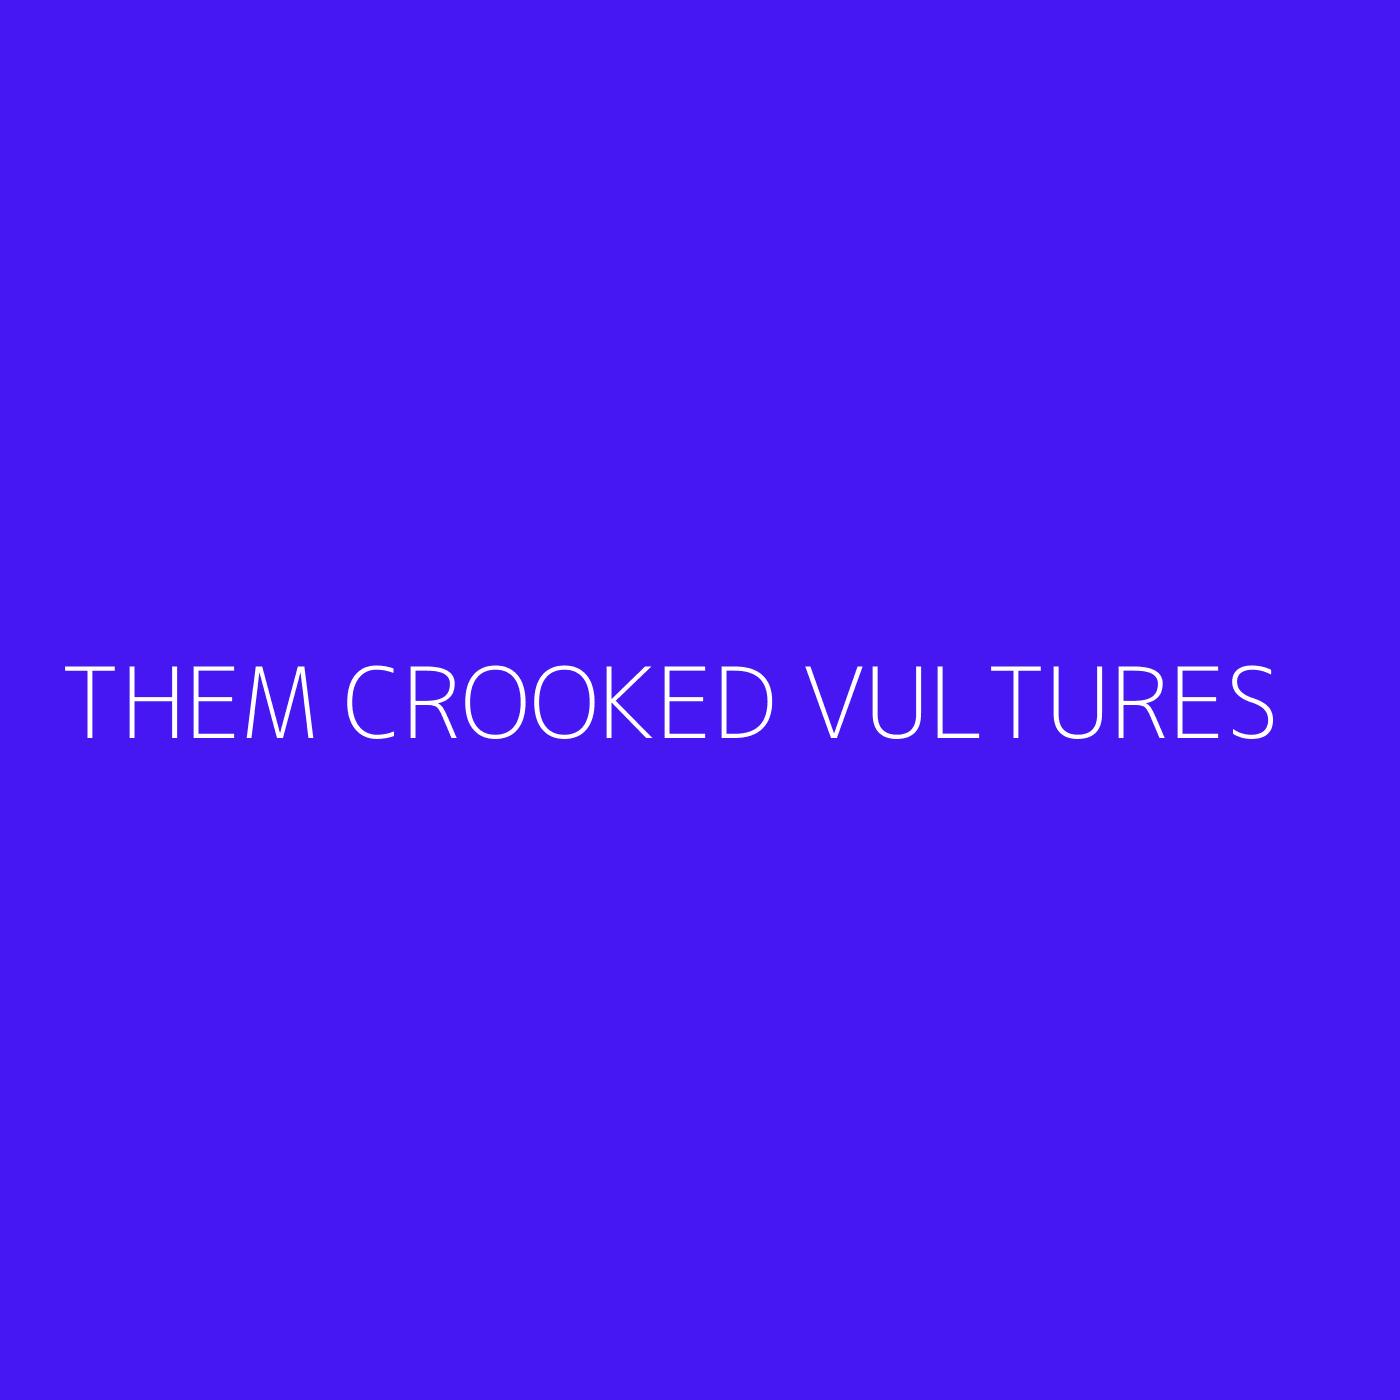 Them Crooked Vultures Playlist Artwork